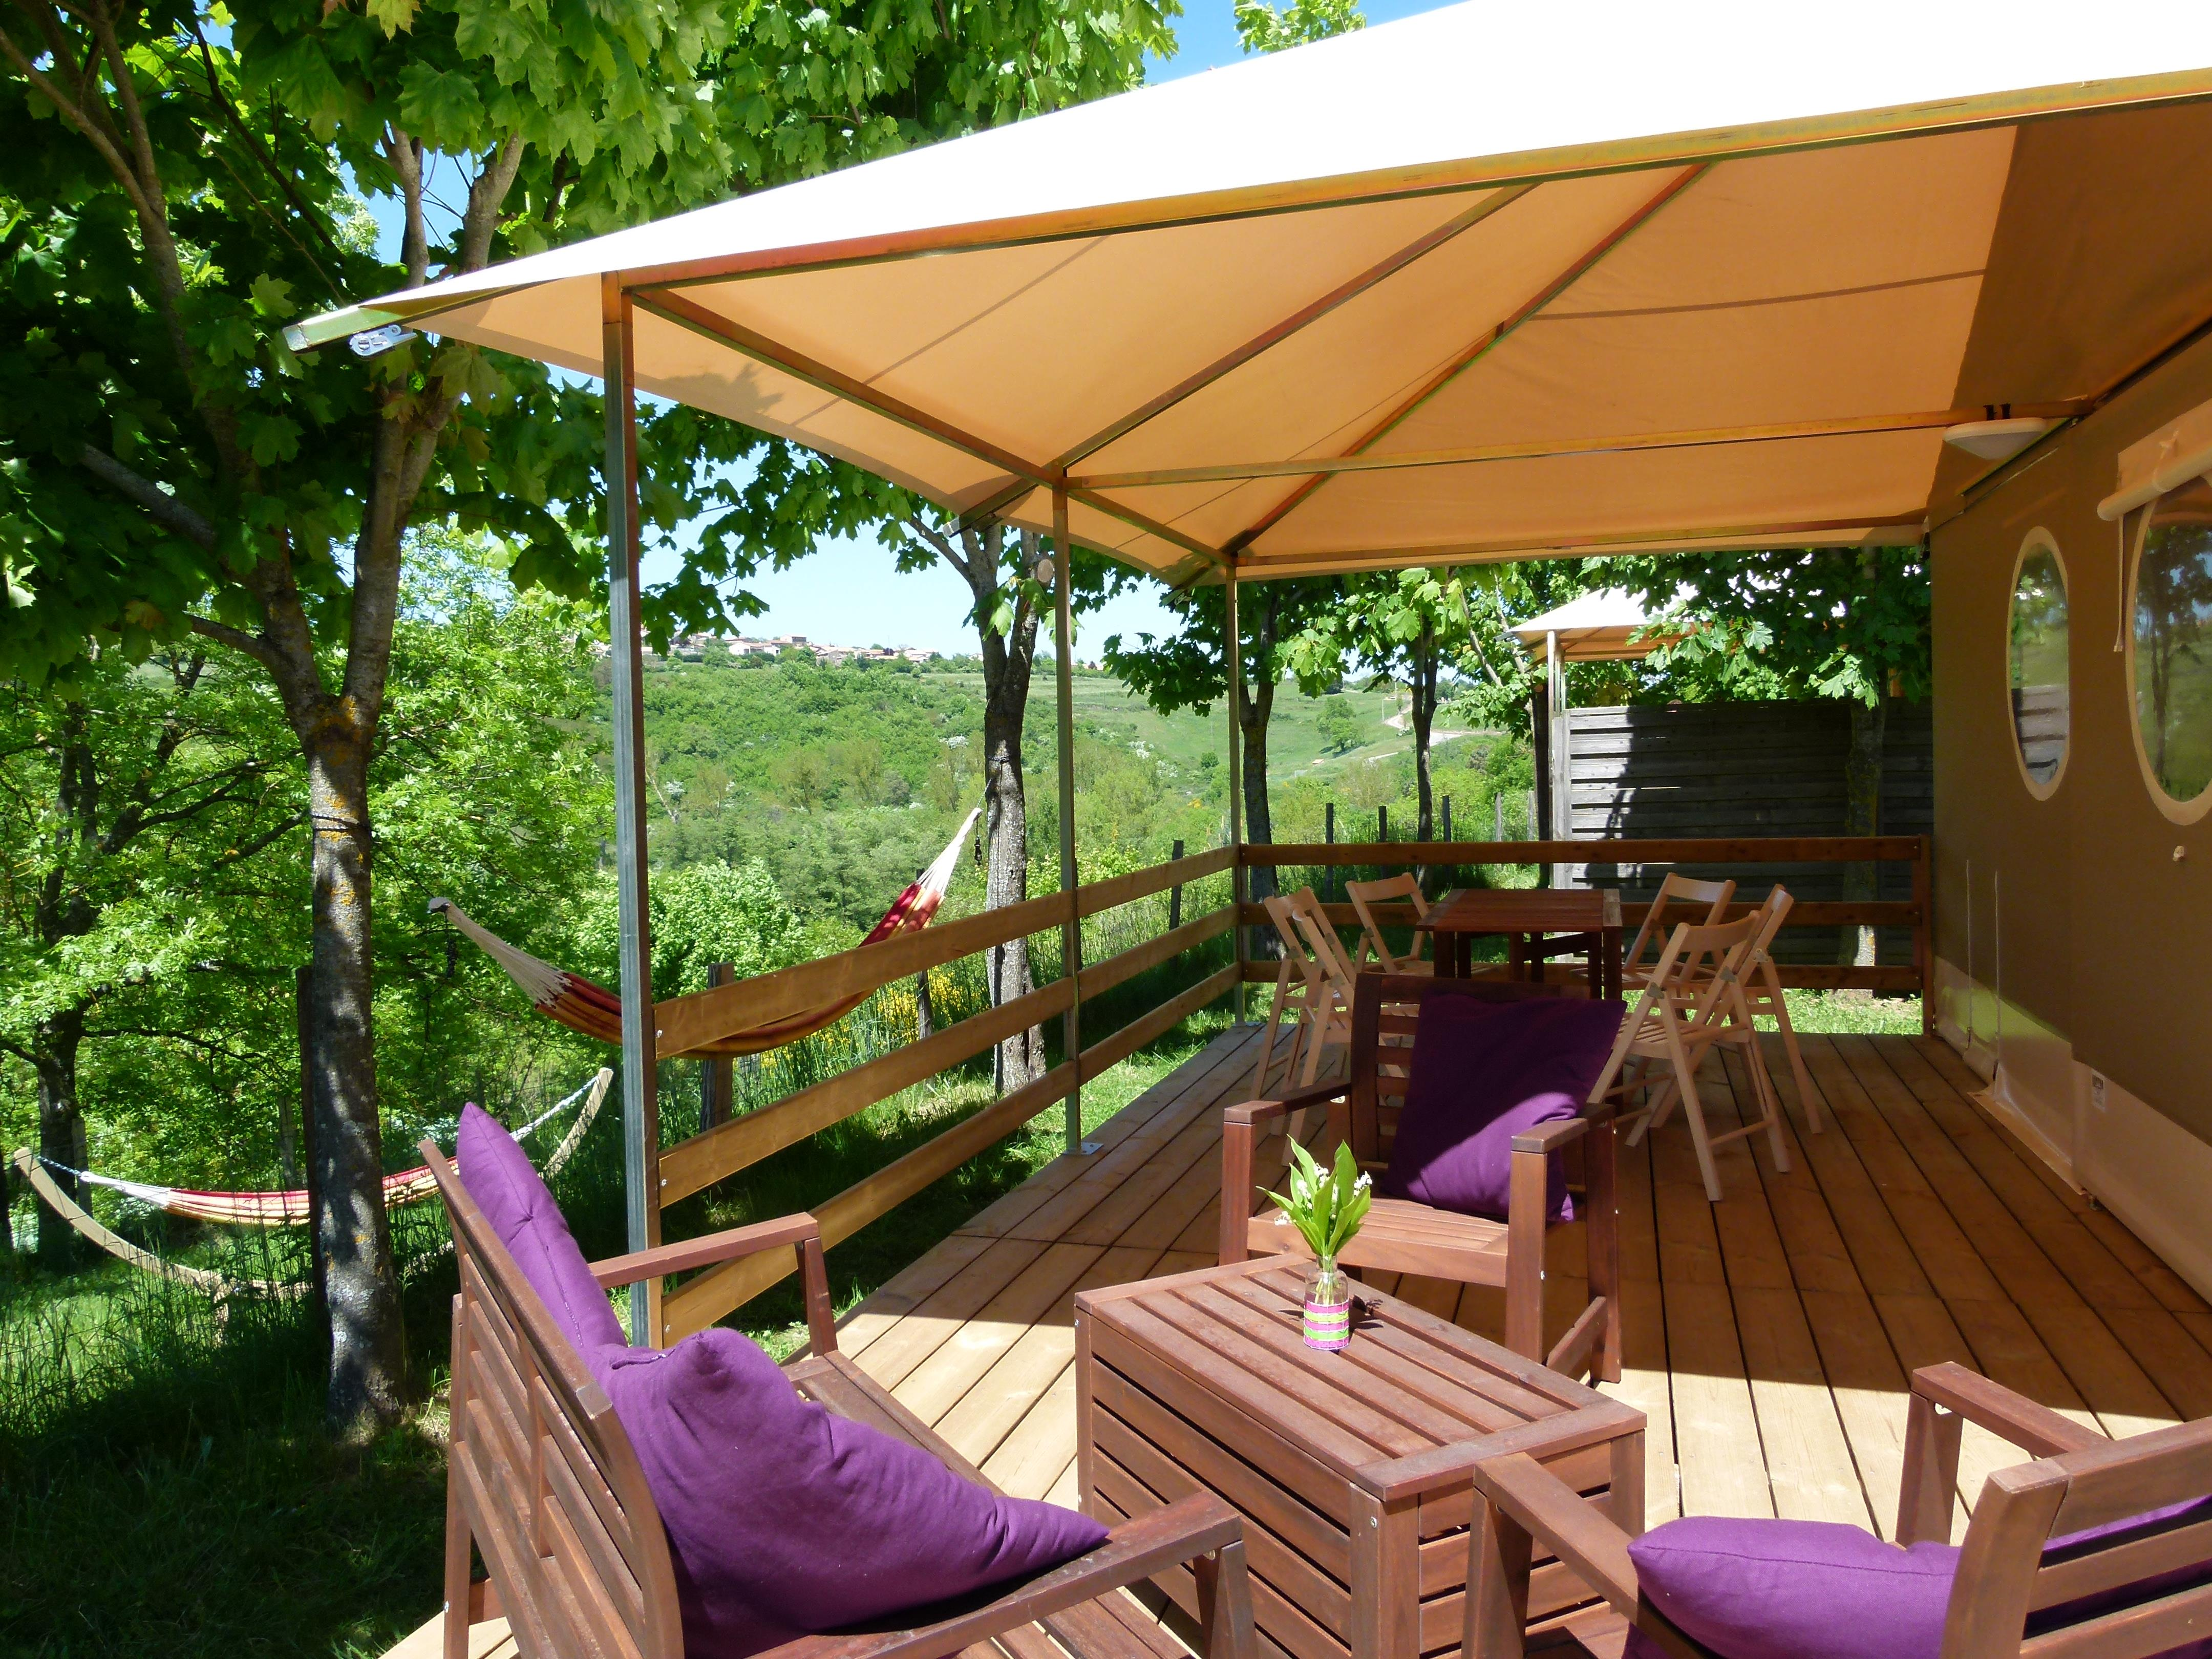 Accommodation - Tente Lodge Pagan With Private Facilities - Sites et Paysages L'Oasis